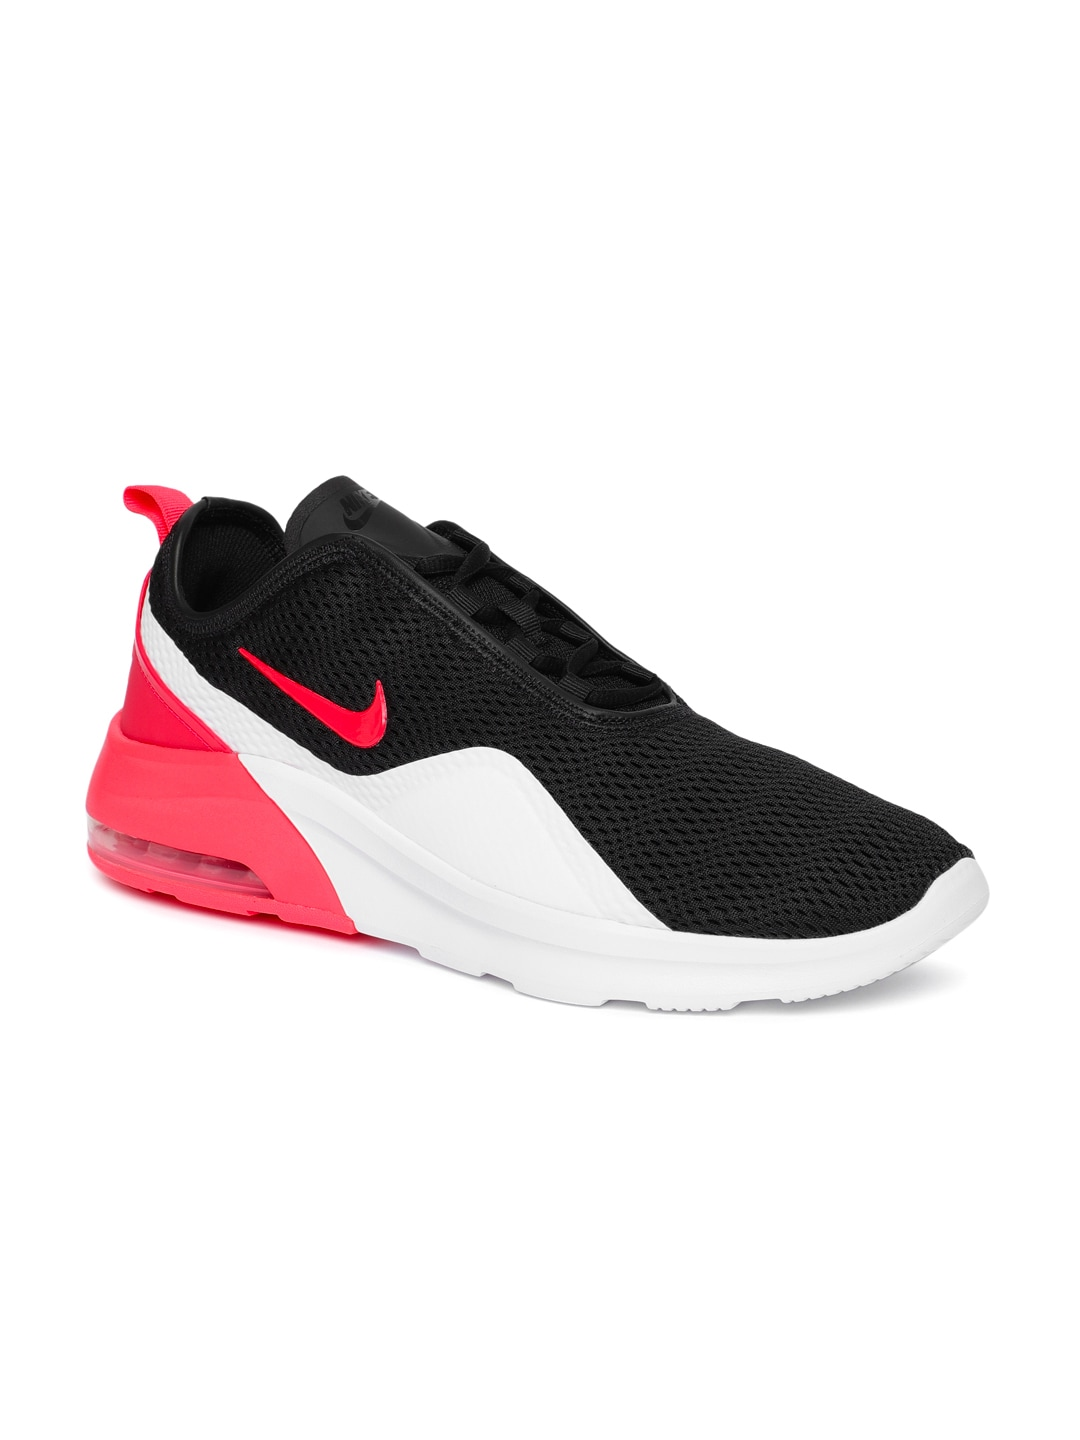 pretty nice 25f49 9c366 Nike Mesh Shoes - Buy Originl Nike Mesh Shoes in India  Mynt